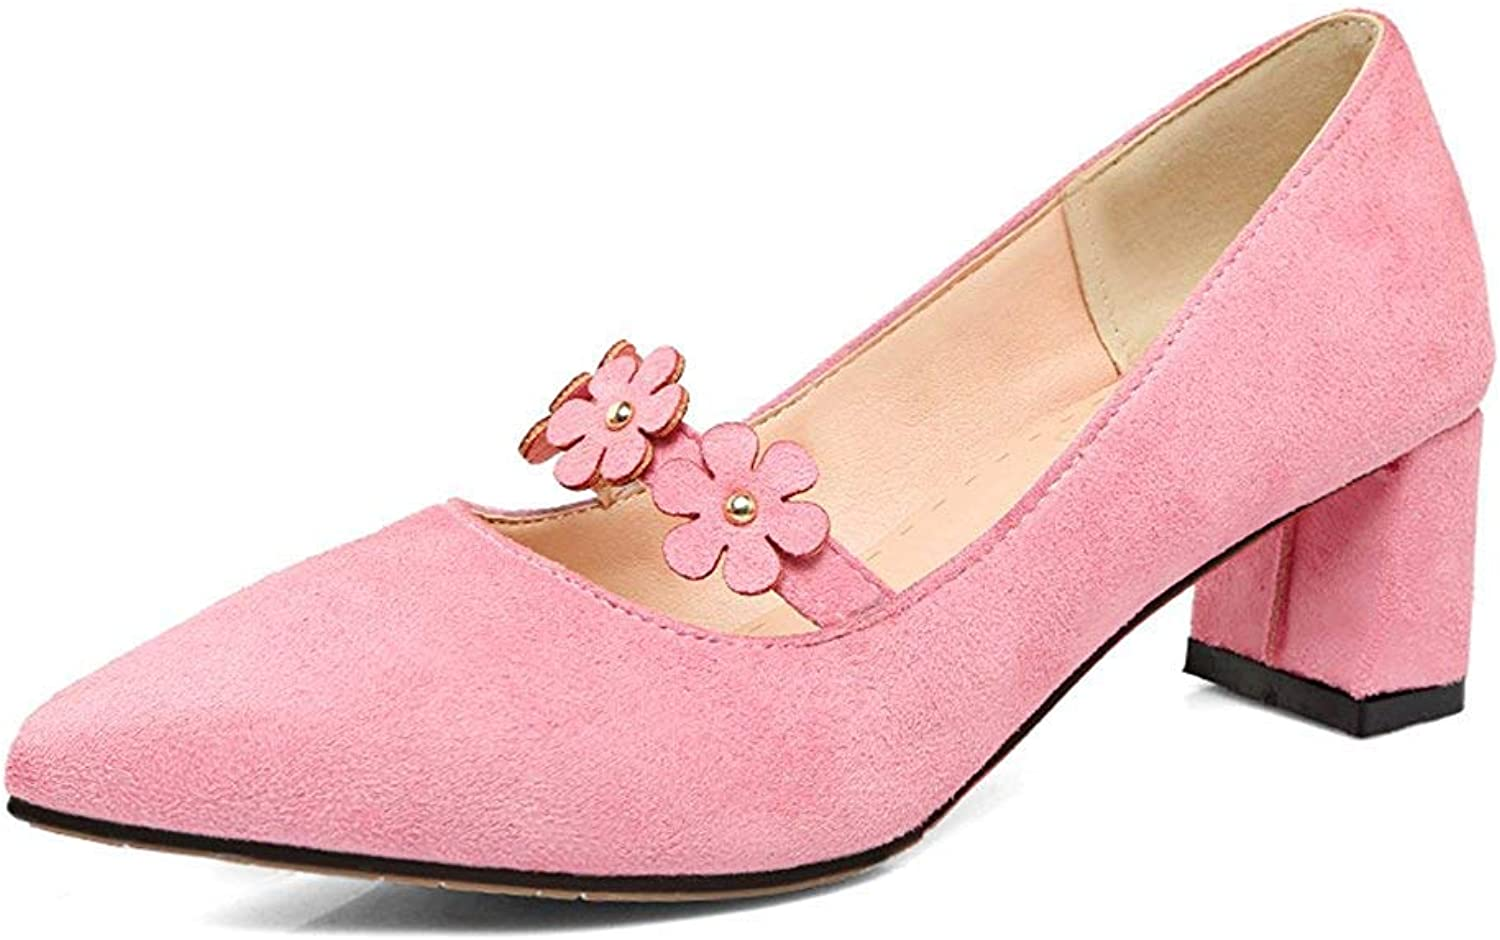 Unm Women's Floral Pointed Toe Faux Suede Dress Low Cut Chunky Mid Heels Slip On Pumps shoes